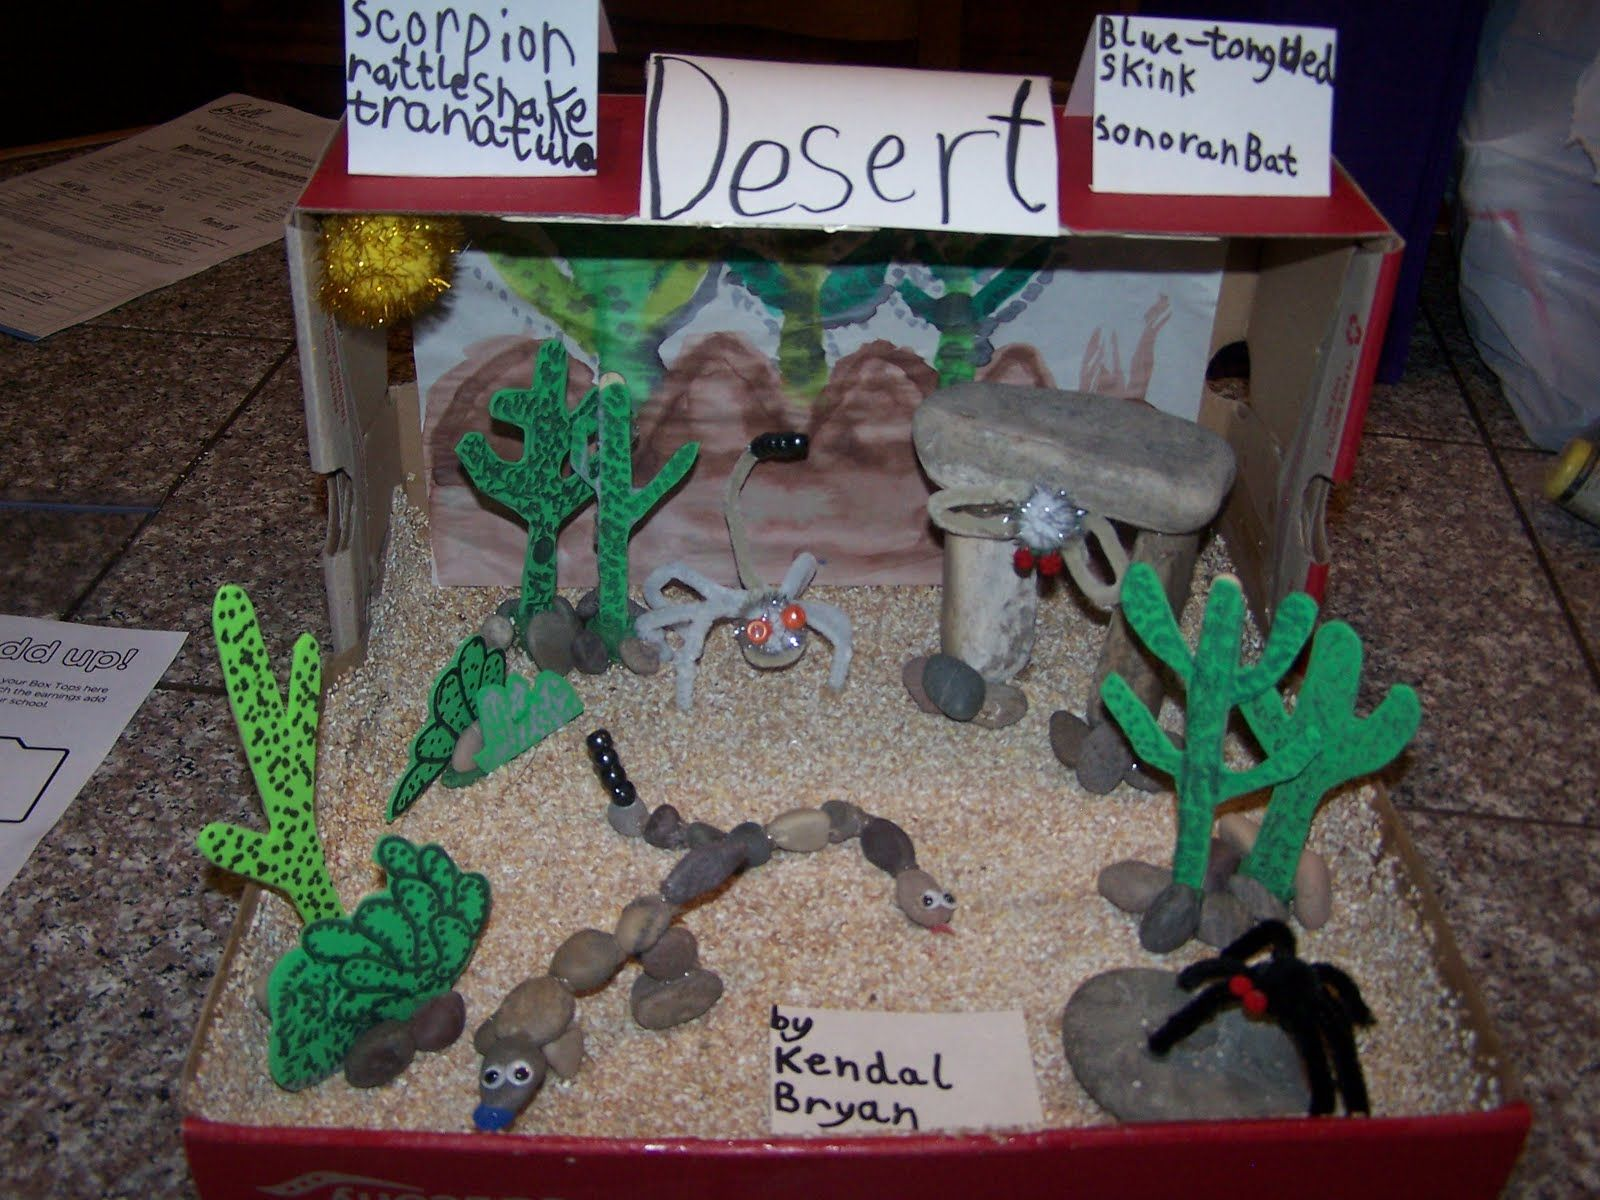 shoebox desert diorama - Bing Images | School projects ...